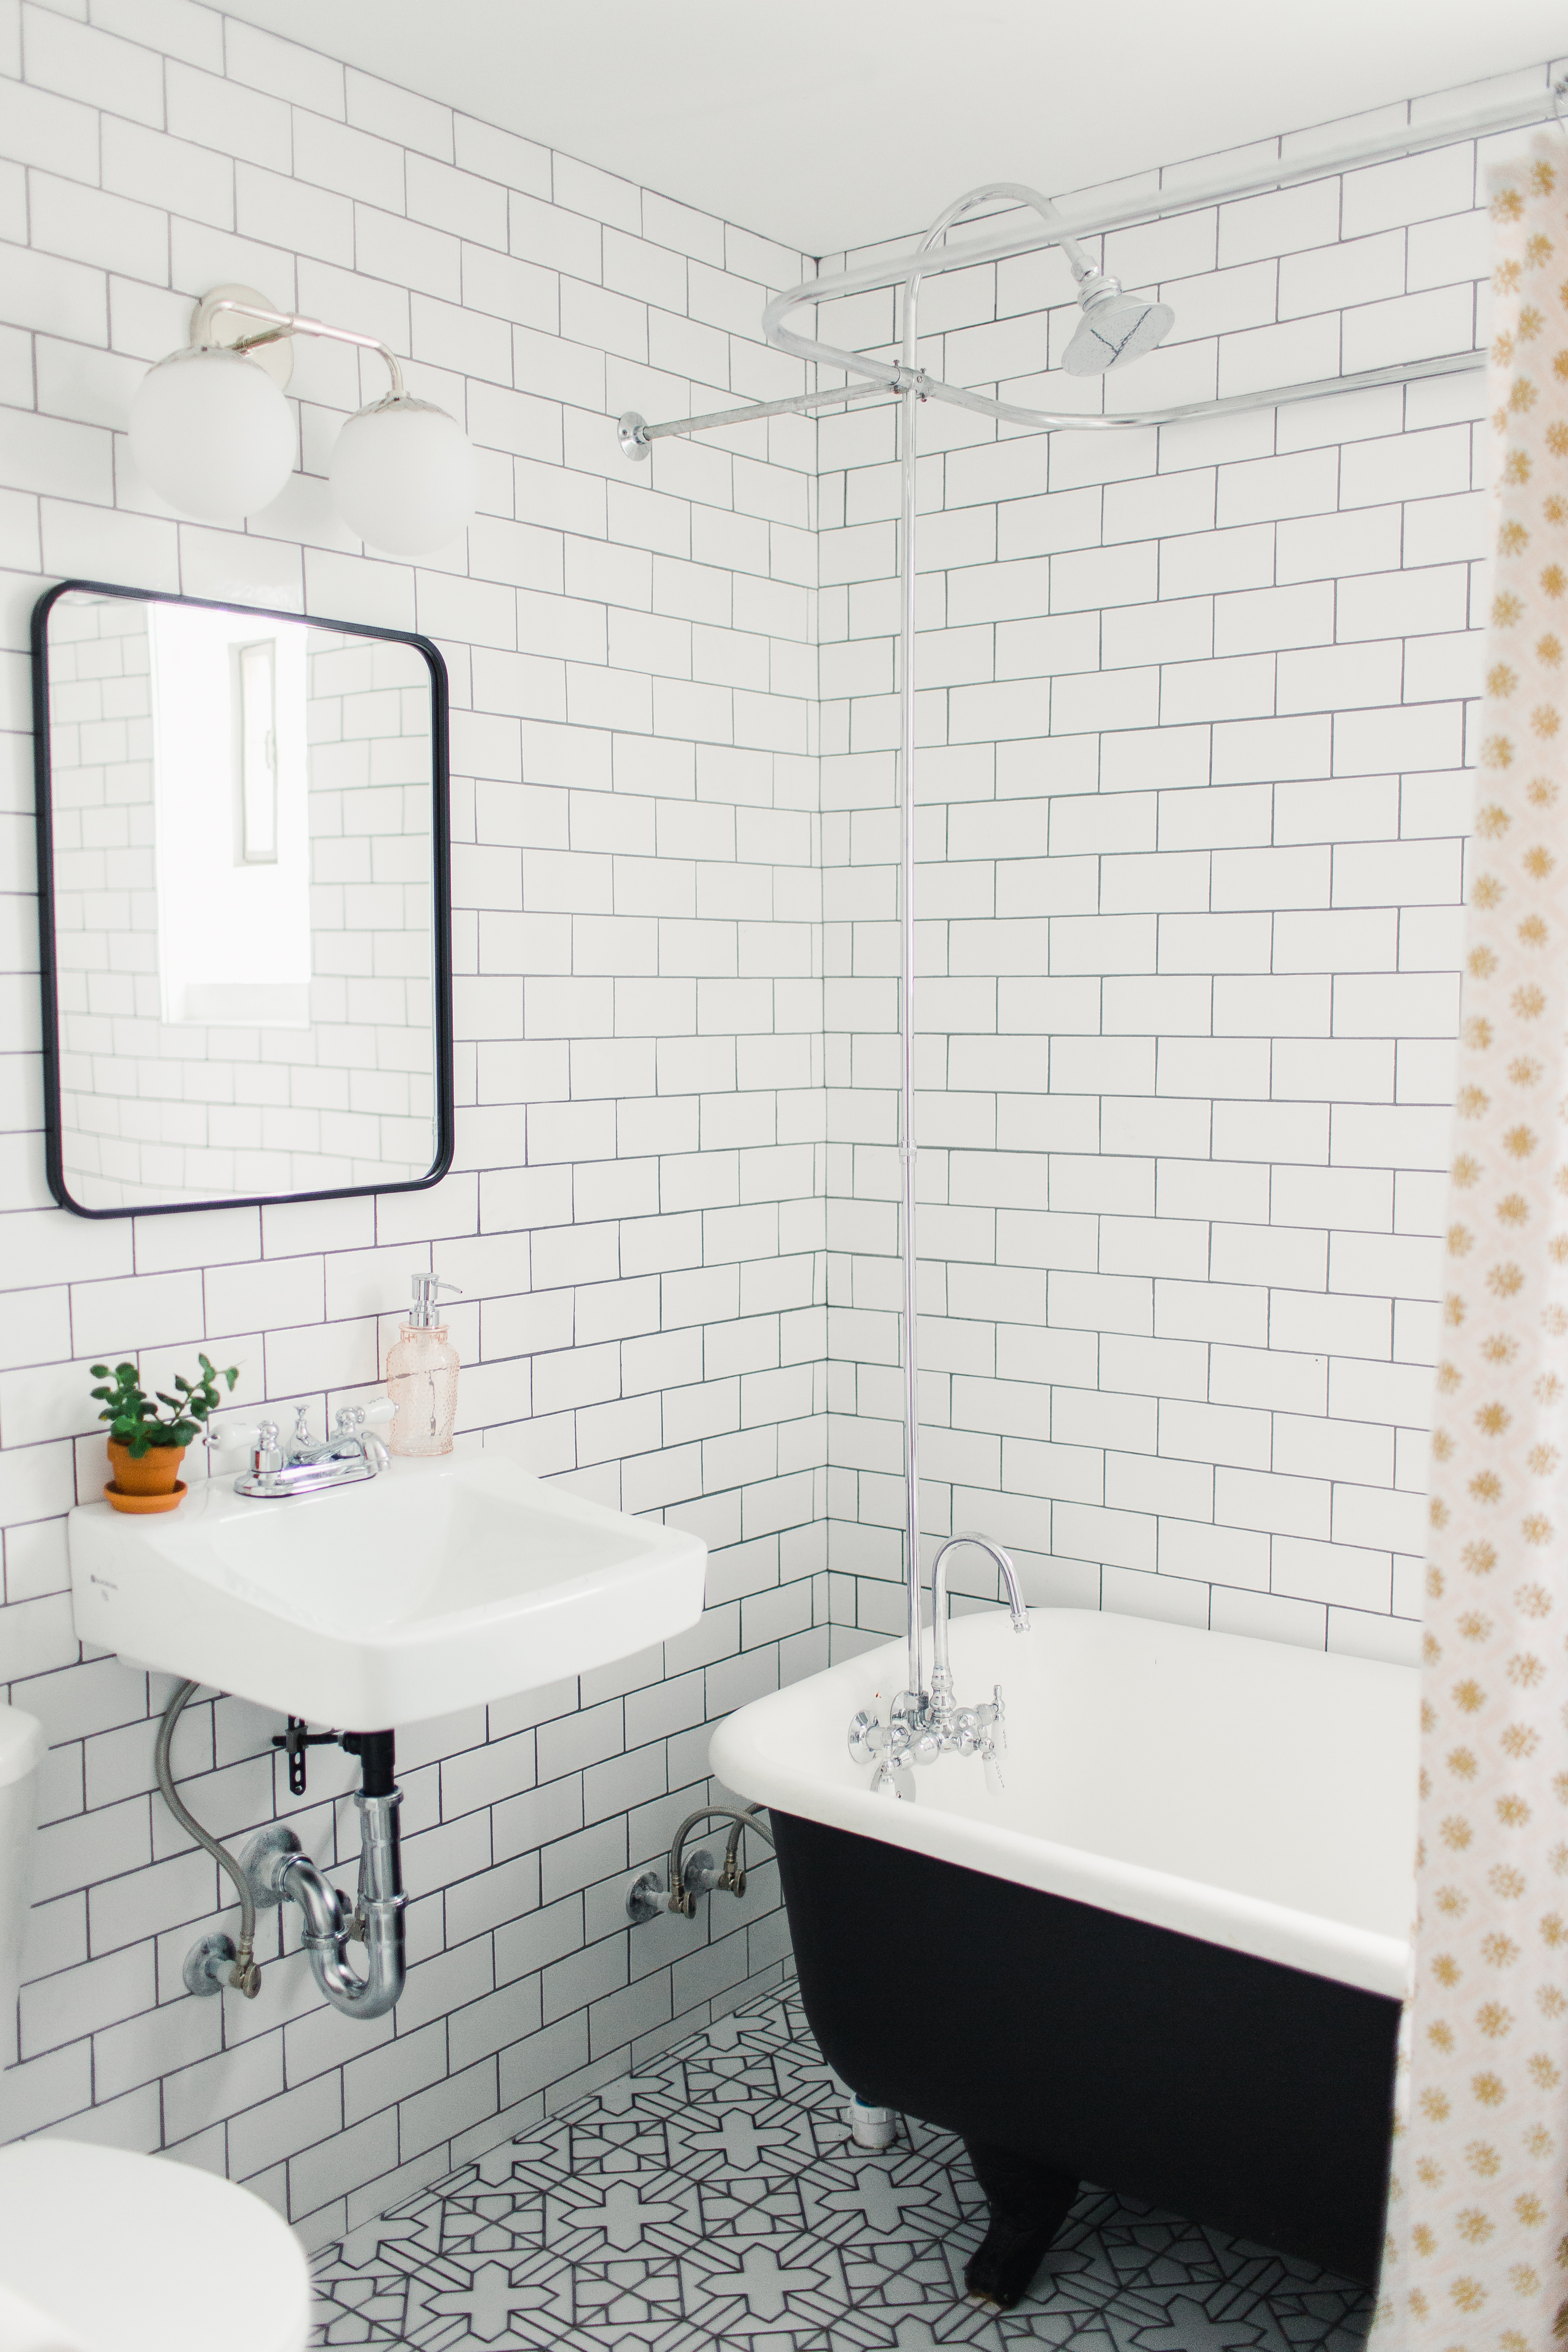 2018_Q4_image_hi_res_full-rights_influencer_Patty-Wagner_bathroom_floor_handpainted_tile_kasbah_neutral_motif_wall_3x6_subway_white_gloss_sink_detail_FC-232655.jpg?mtime=20181023093037#asset:422732